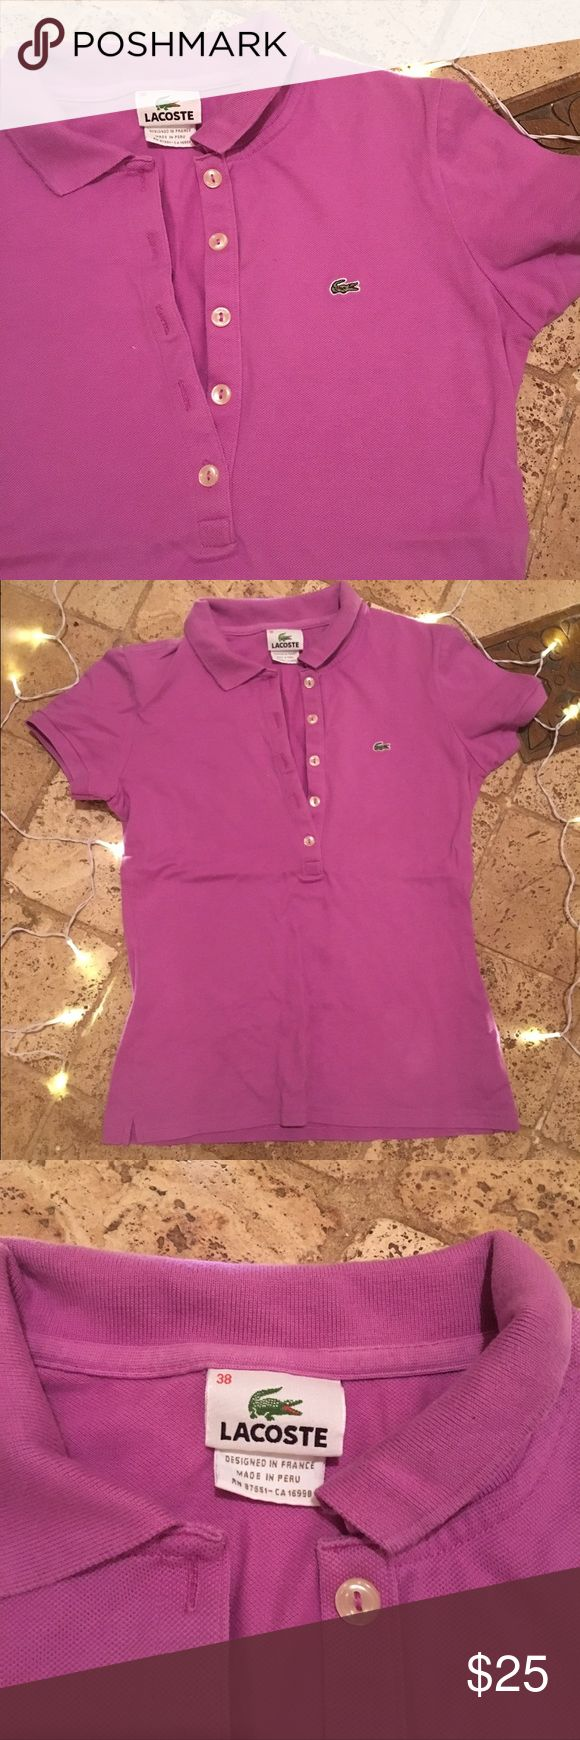 Lacoste fitted polo 👚 Lacoste purple polo shirt. In good condition. Gently used and cared for. Size 38. Fitted. Lacoste Tops